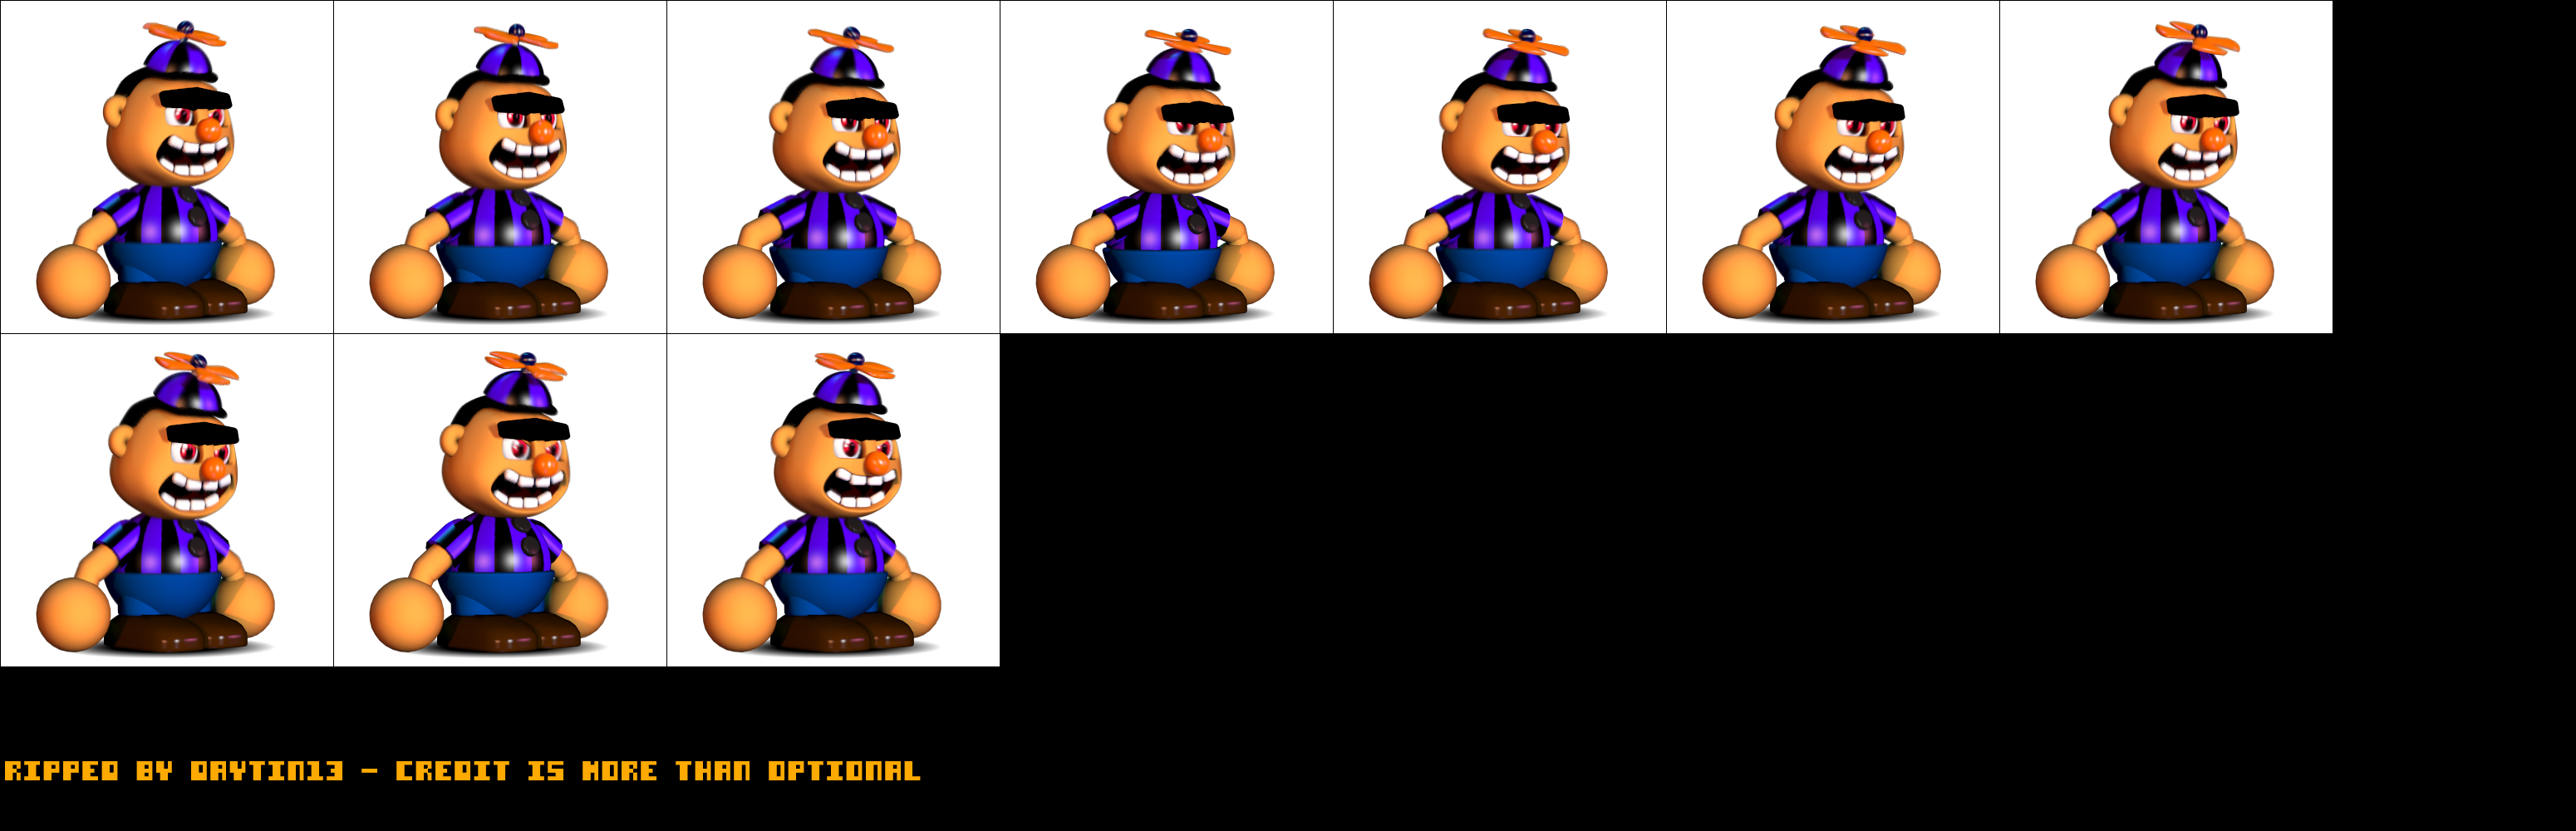 PC / Computer - FNaF World - Brow-Boy - The Spriters Resource